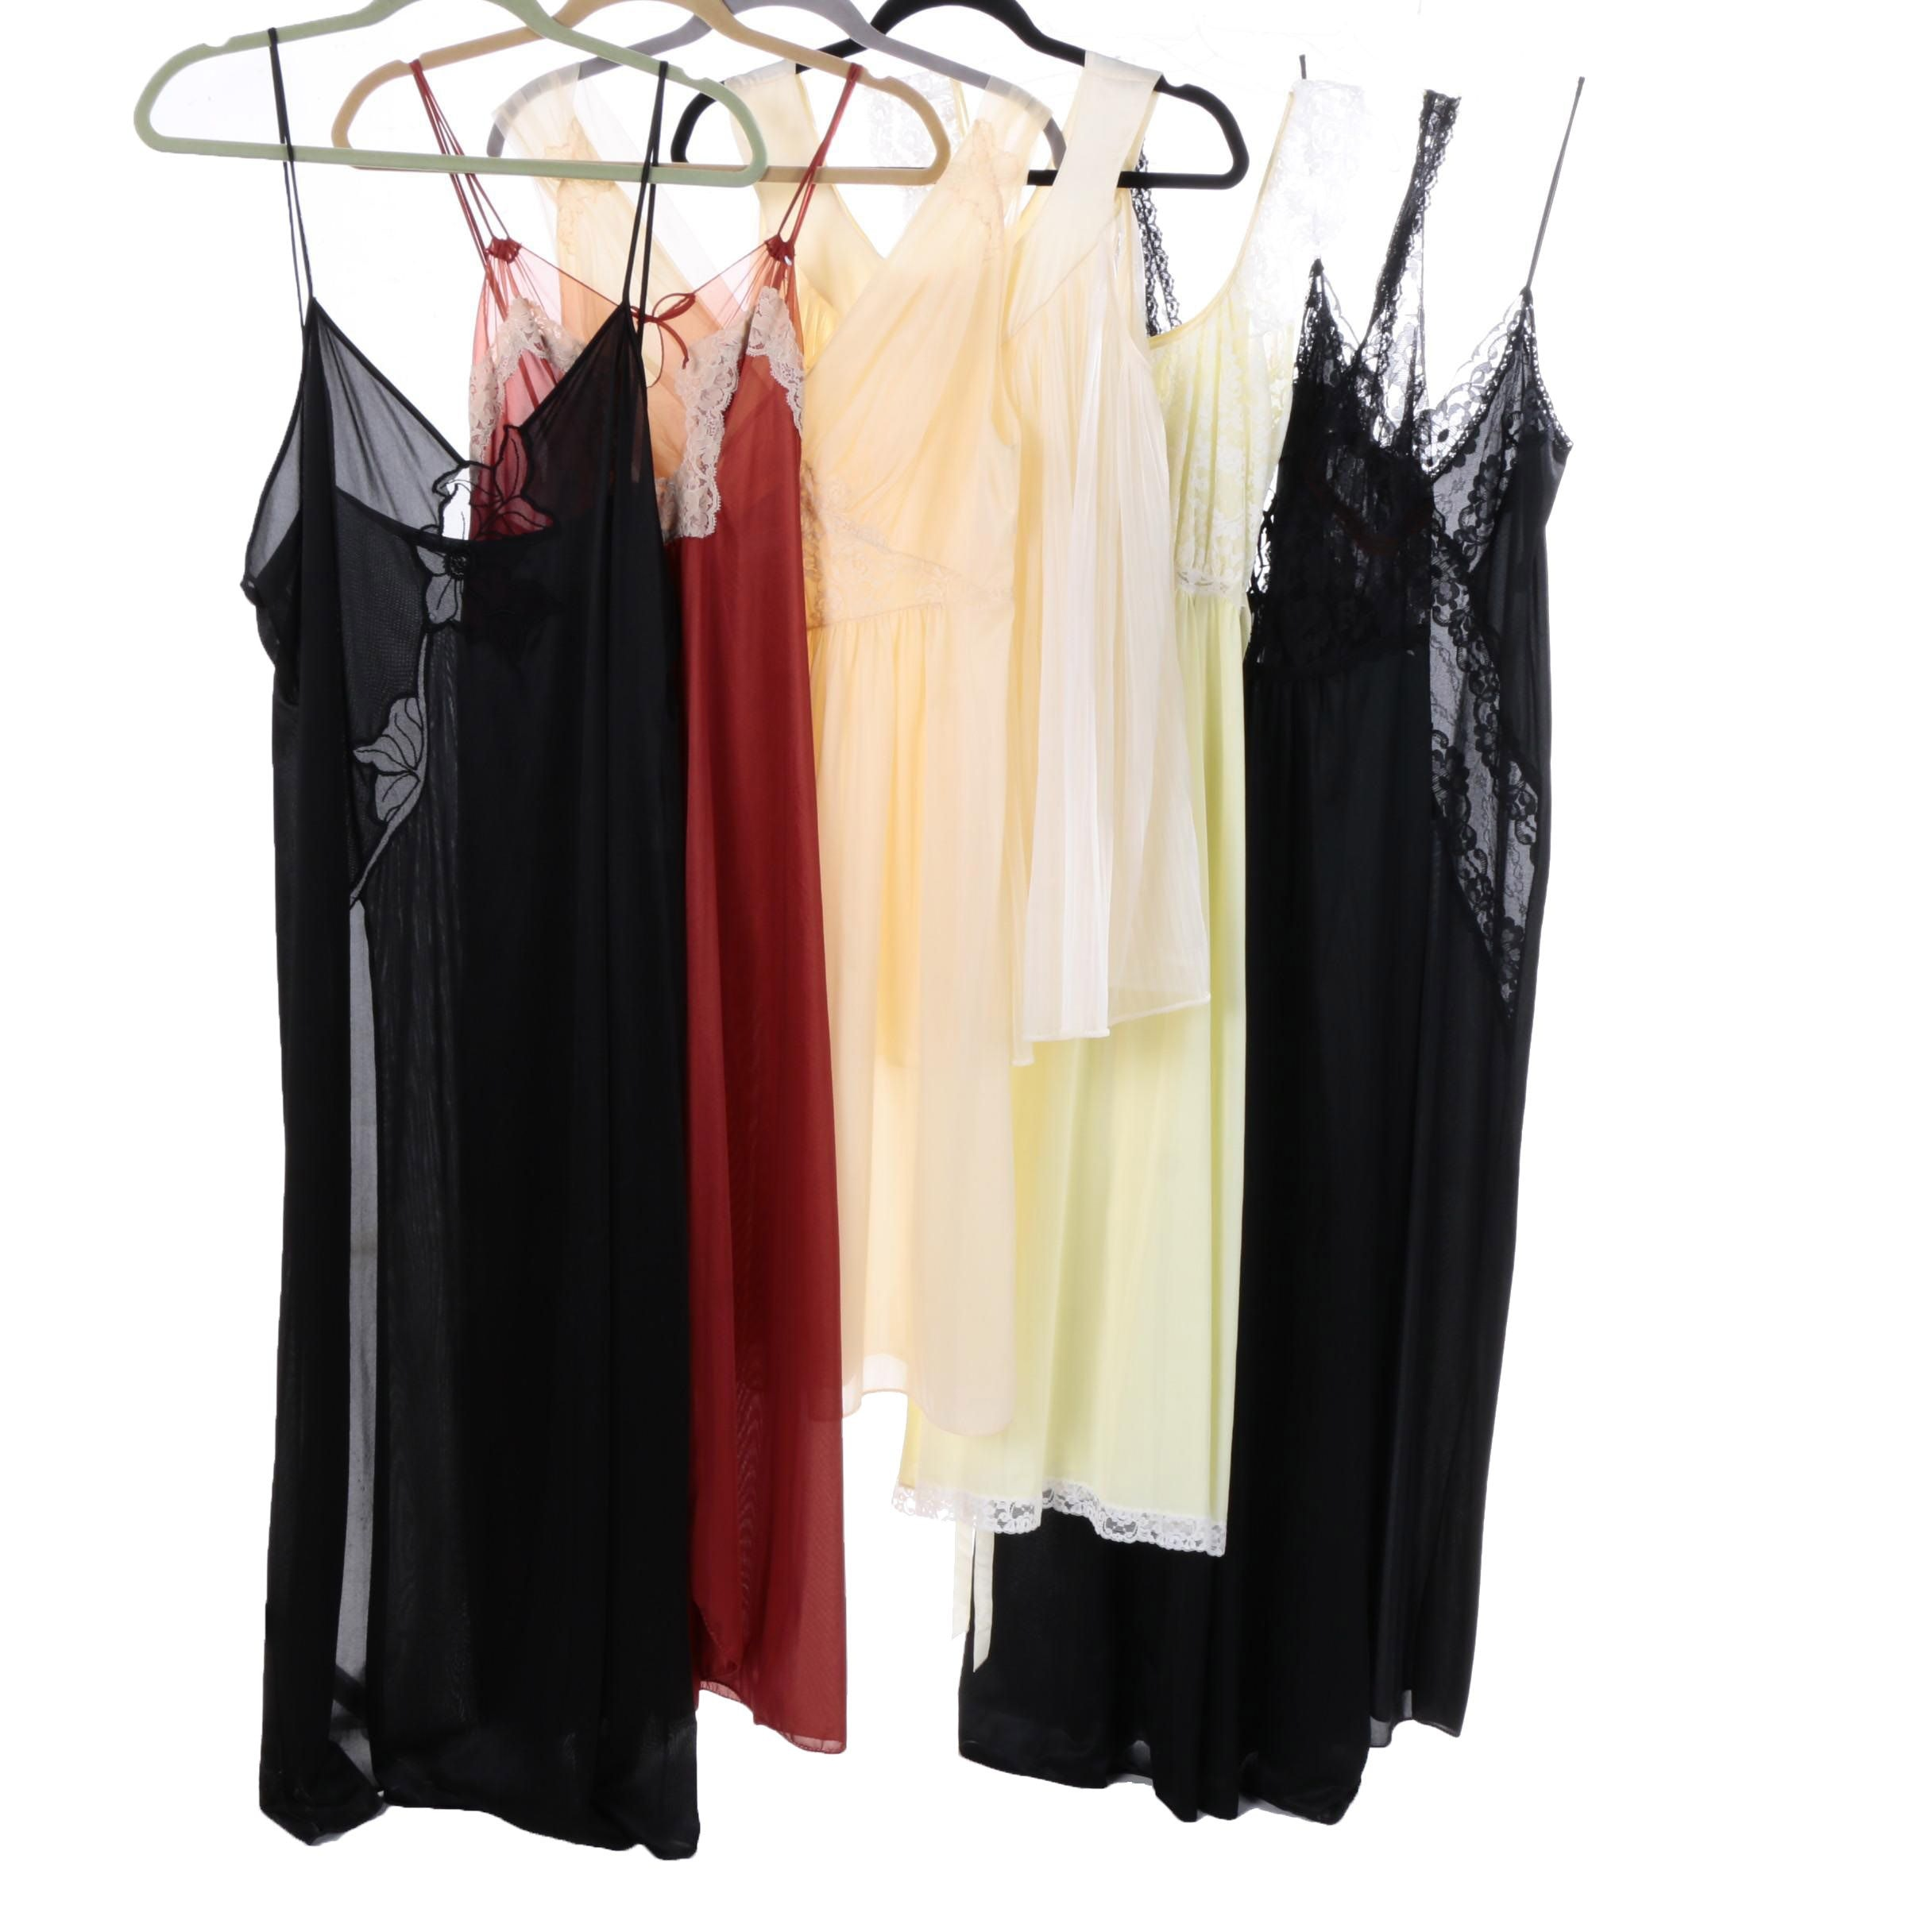 Vintage Sheer and Lace Nightgowns and Slips